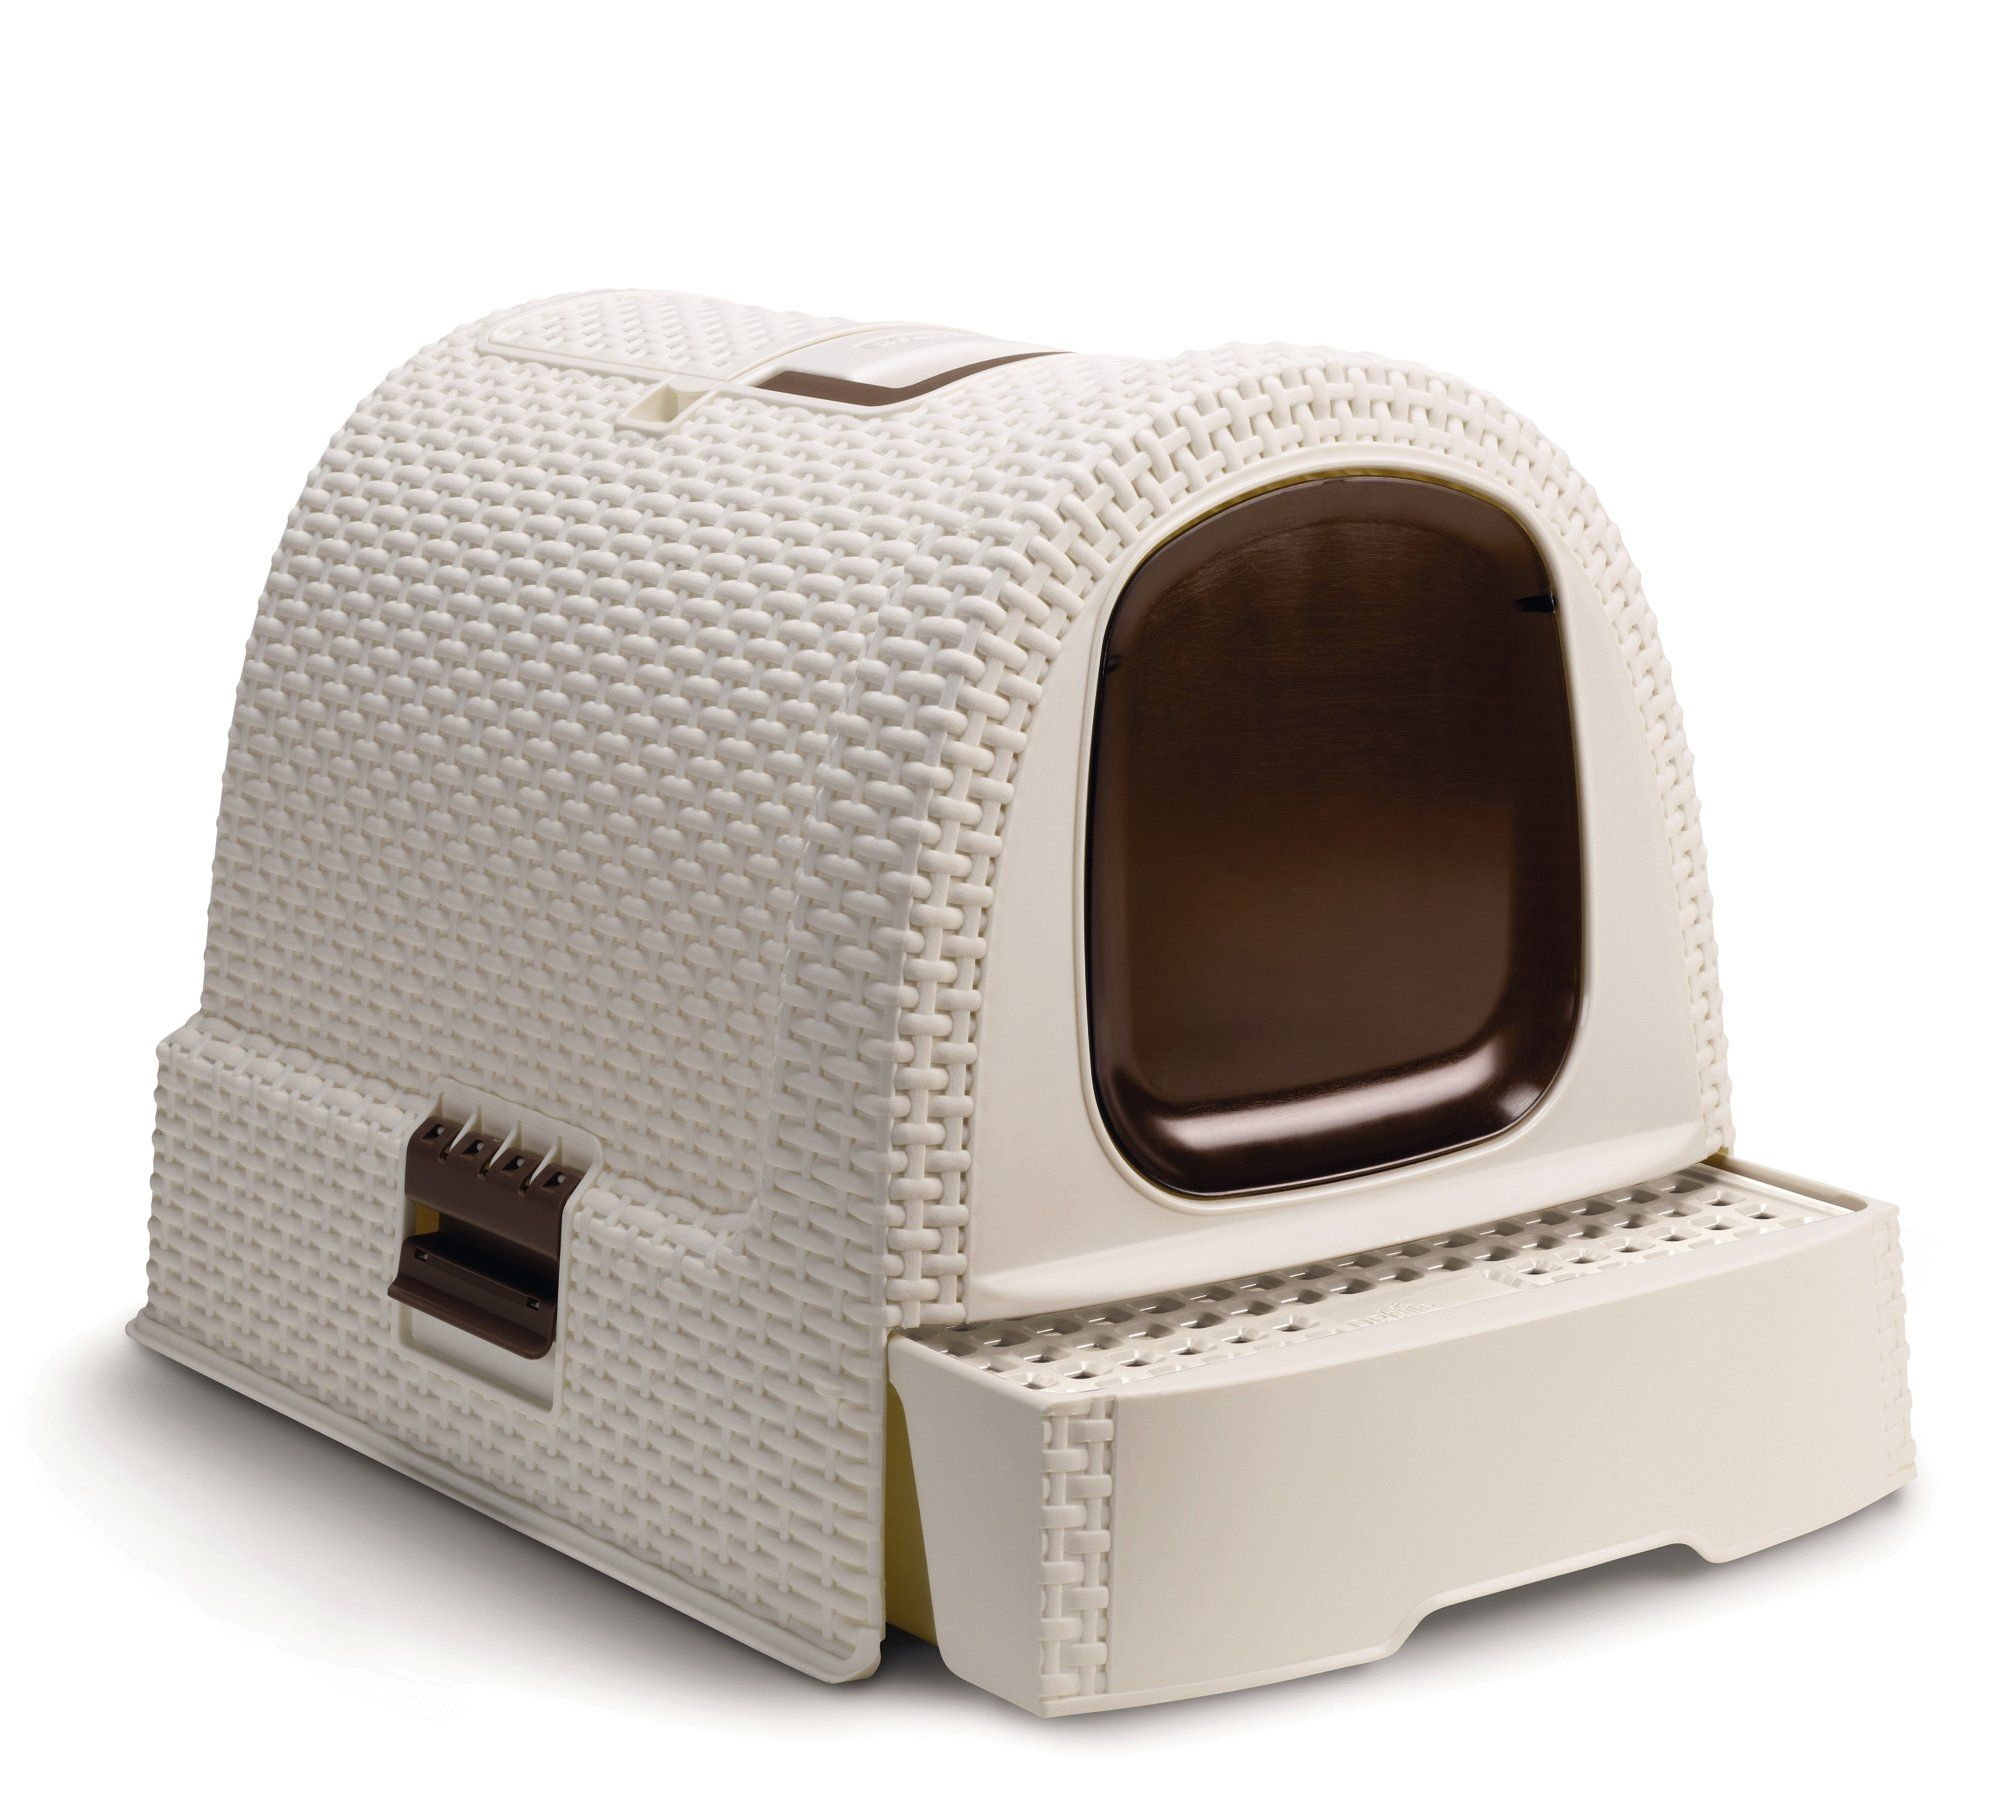 curver litter box style cat toilet amazoncouk pet supplies  - curver litter box style cat toilet amazoncouk pet supplies